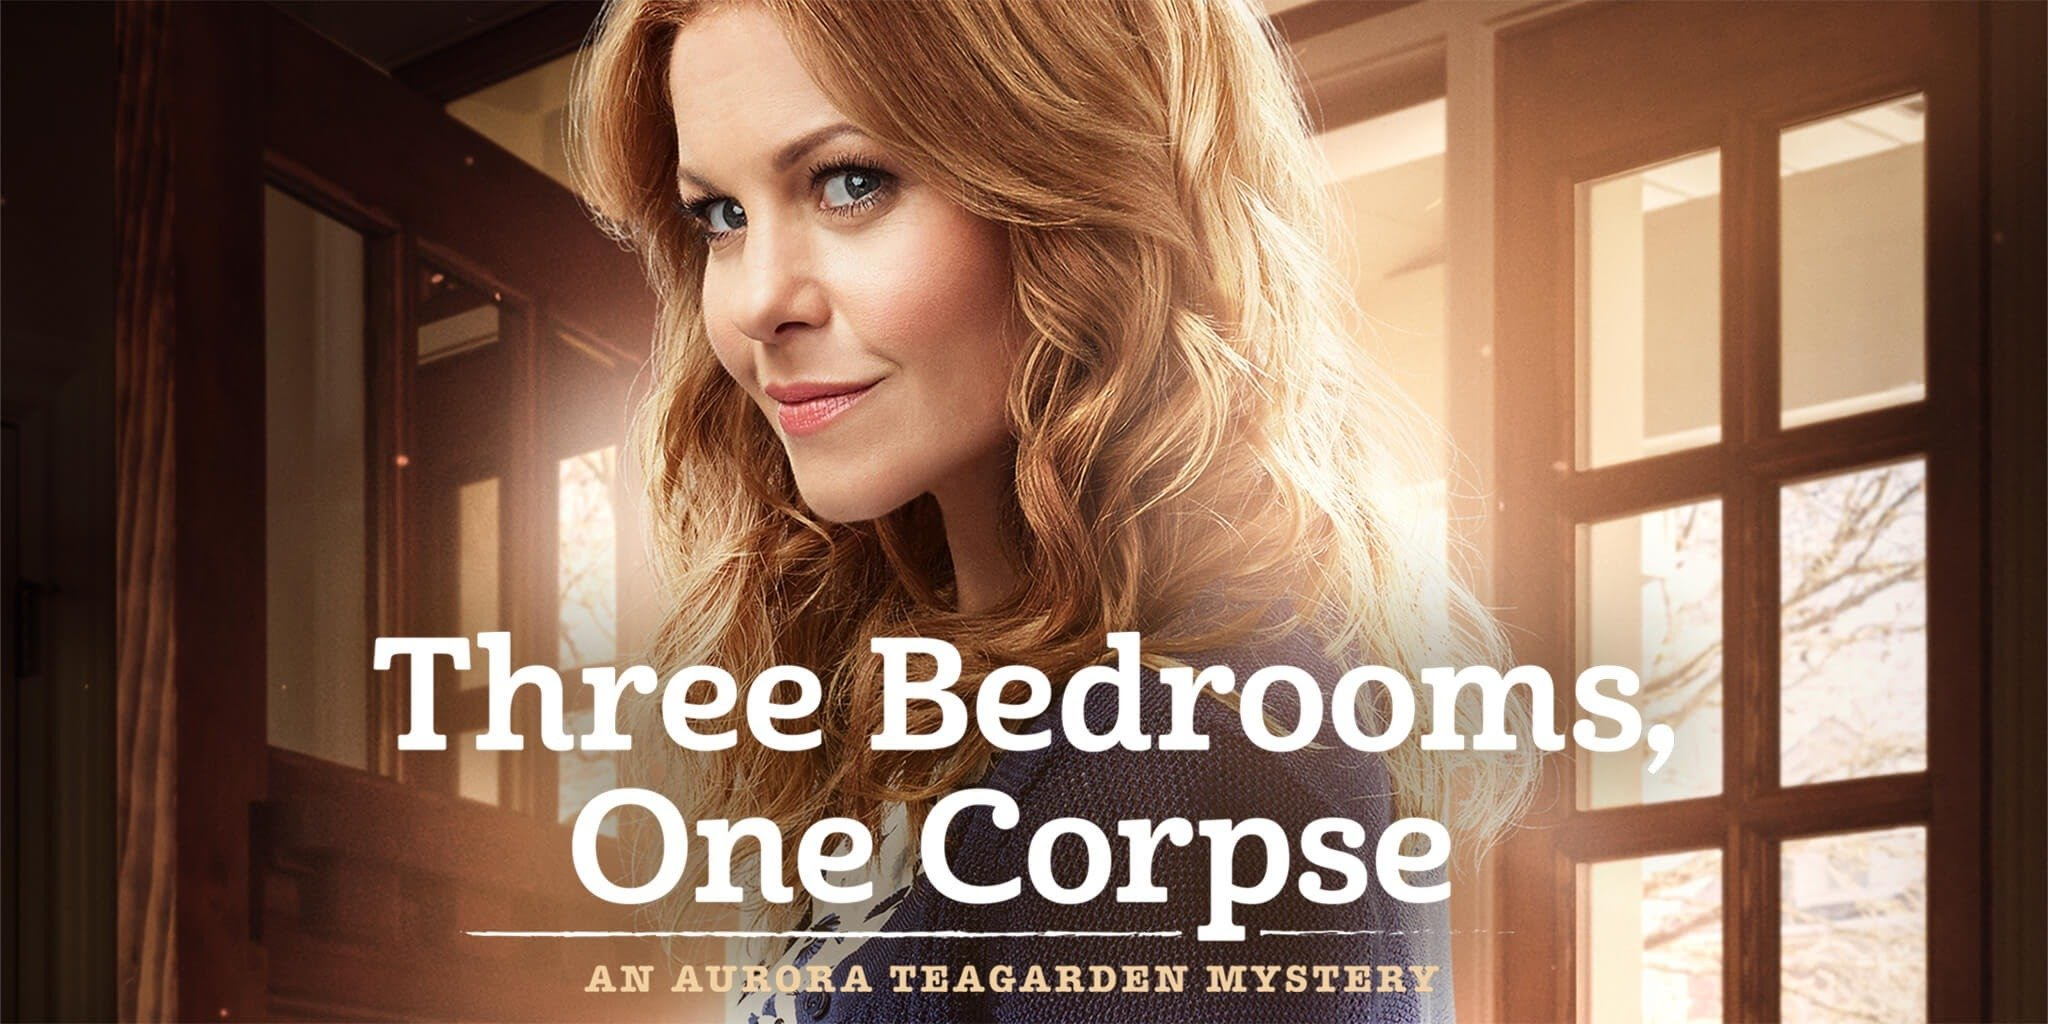 Aurora Teagarden Mysteries on Hallmark | Kings River Life